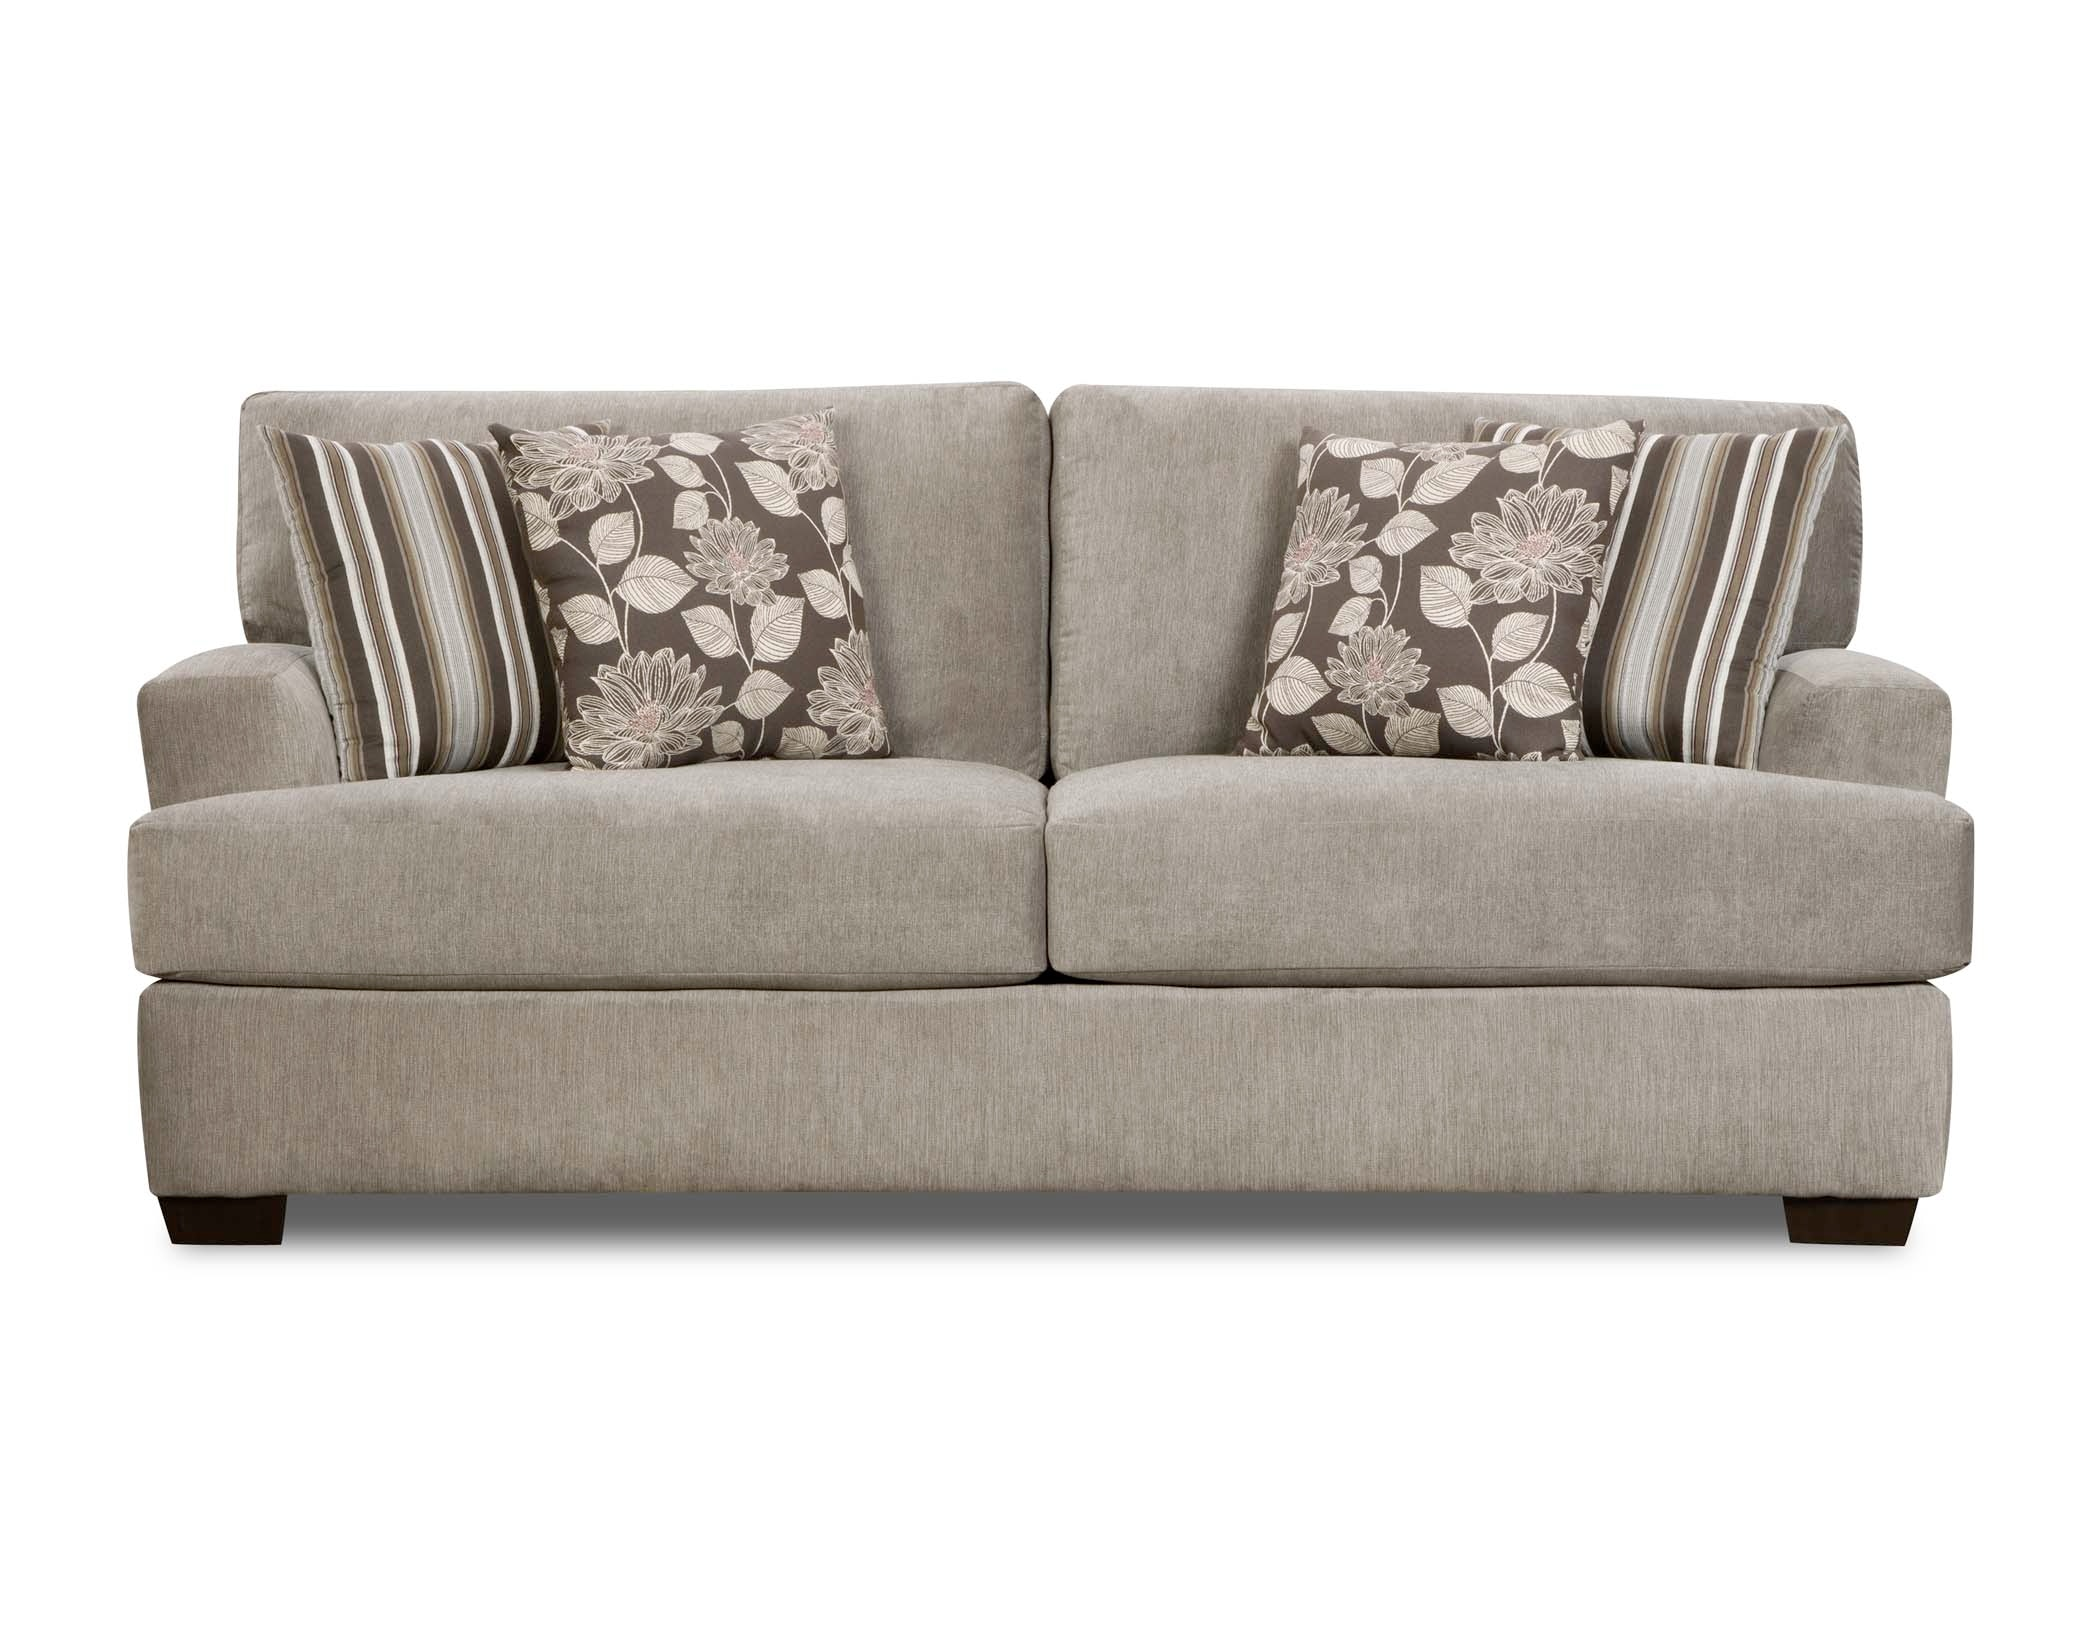 Great Madison Manor Sofa With Pillows 538659